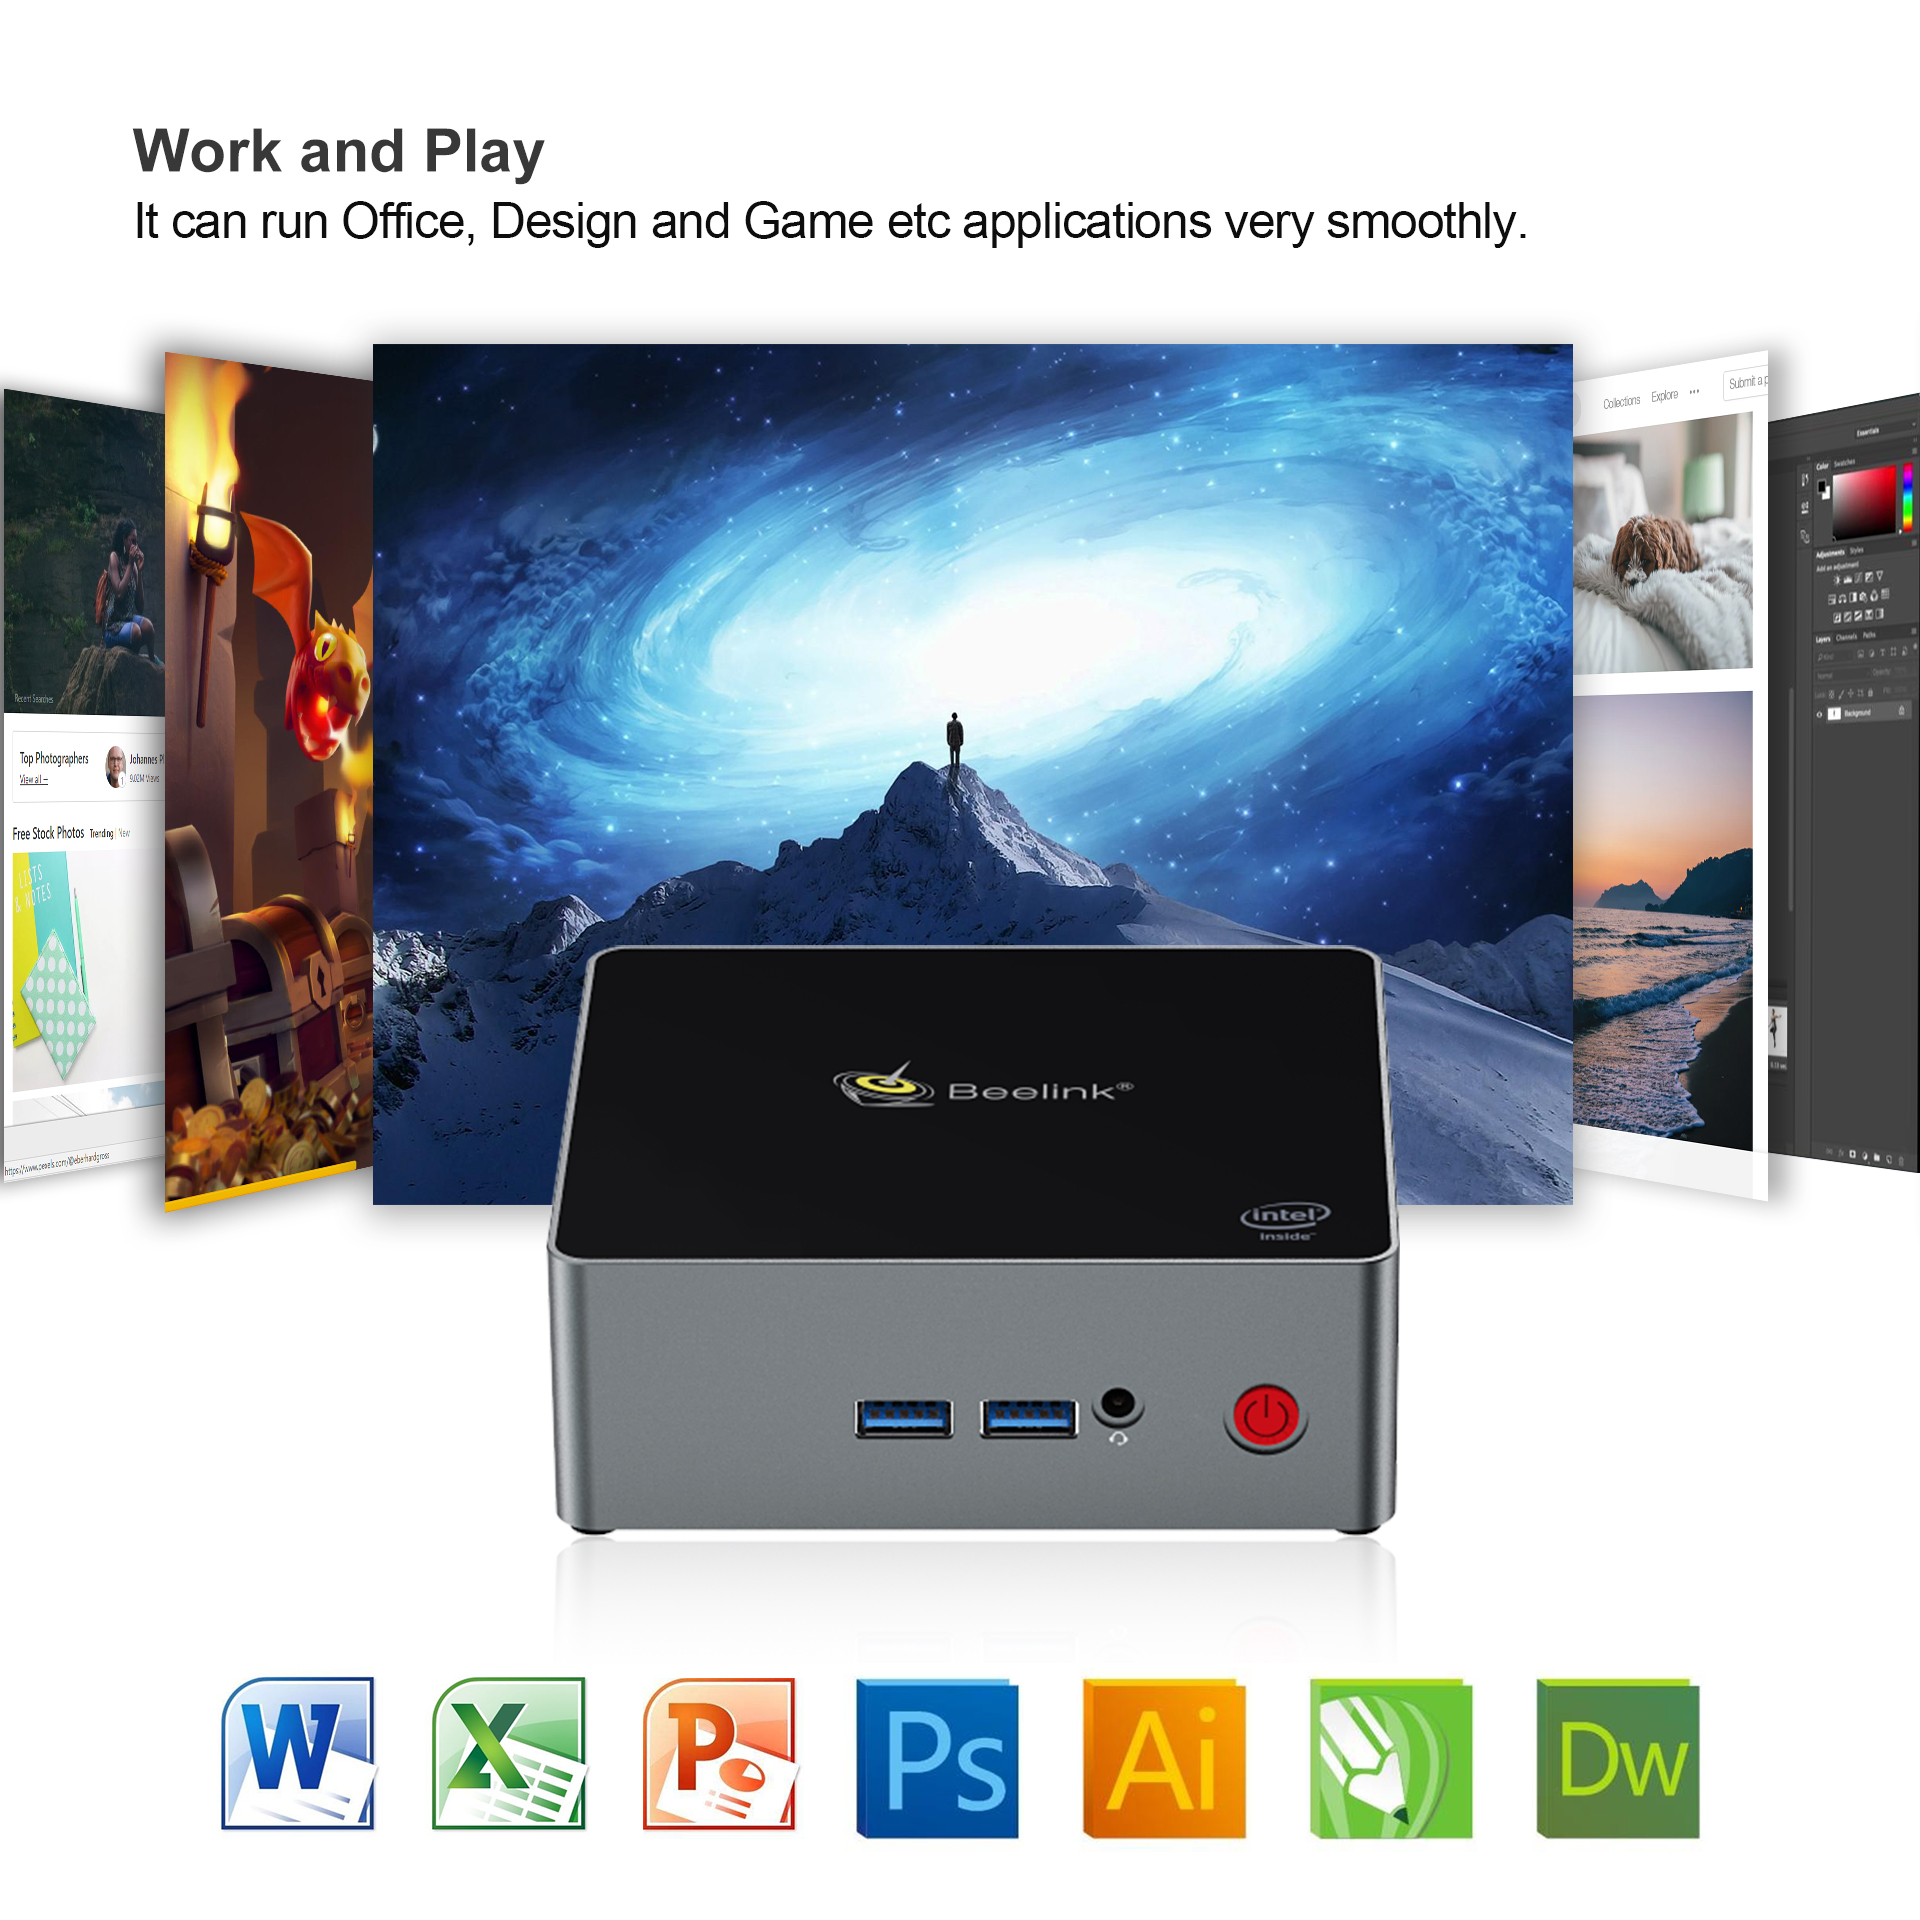 Beelink Latest J45 Powerful Mini Pc 4G/8G 128G/256G/512G J4205 1000M Dual Wifi Business Smart Mini PC Desktop